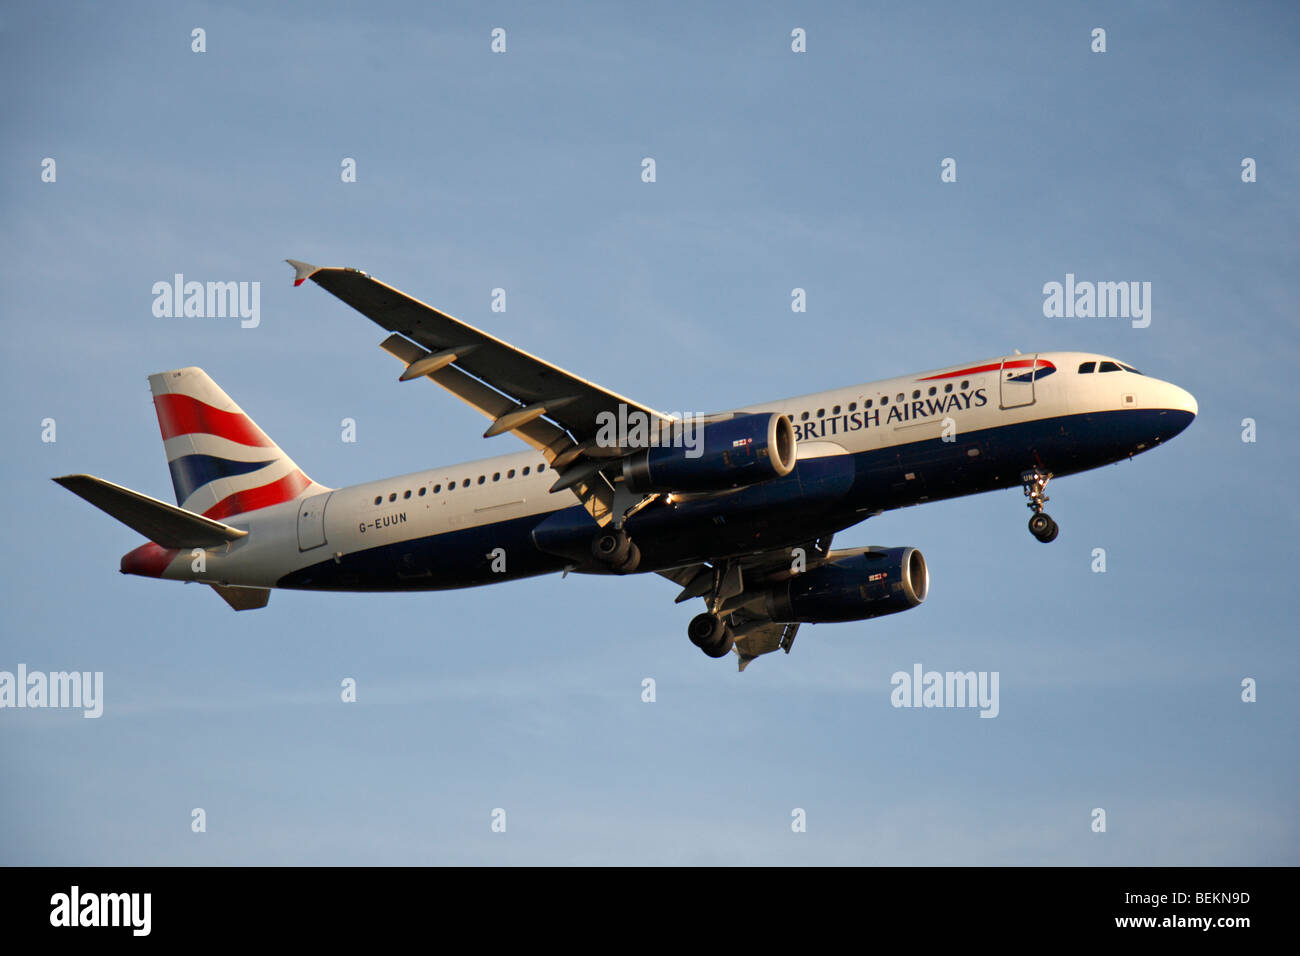 Ba A320 Flying Stock Photos & Ba A320 Flying Stock Images